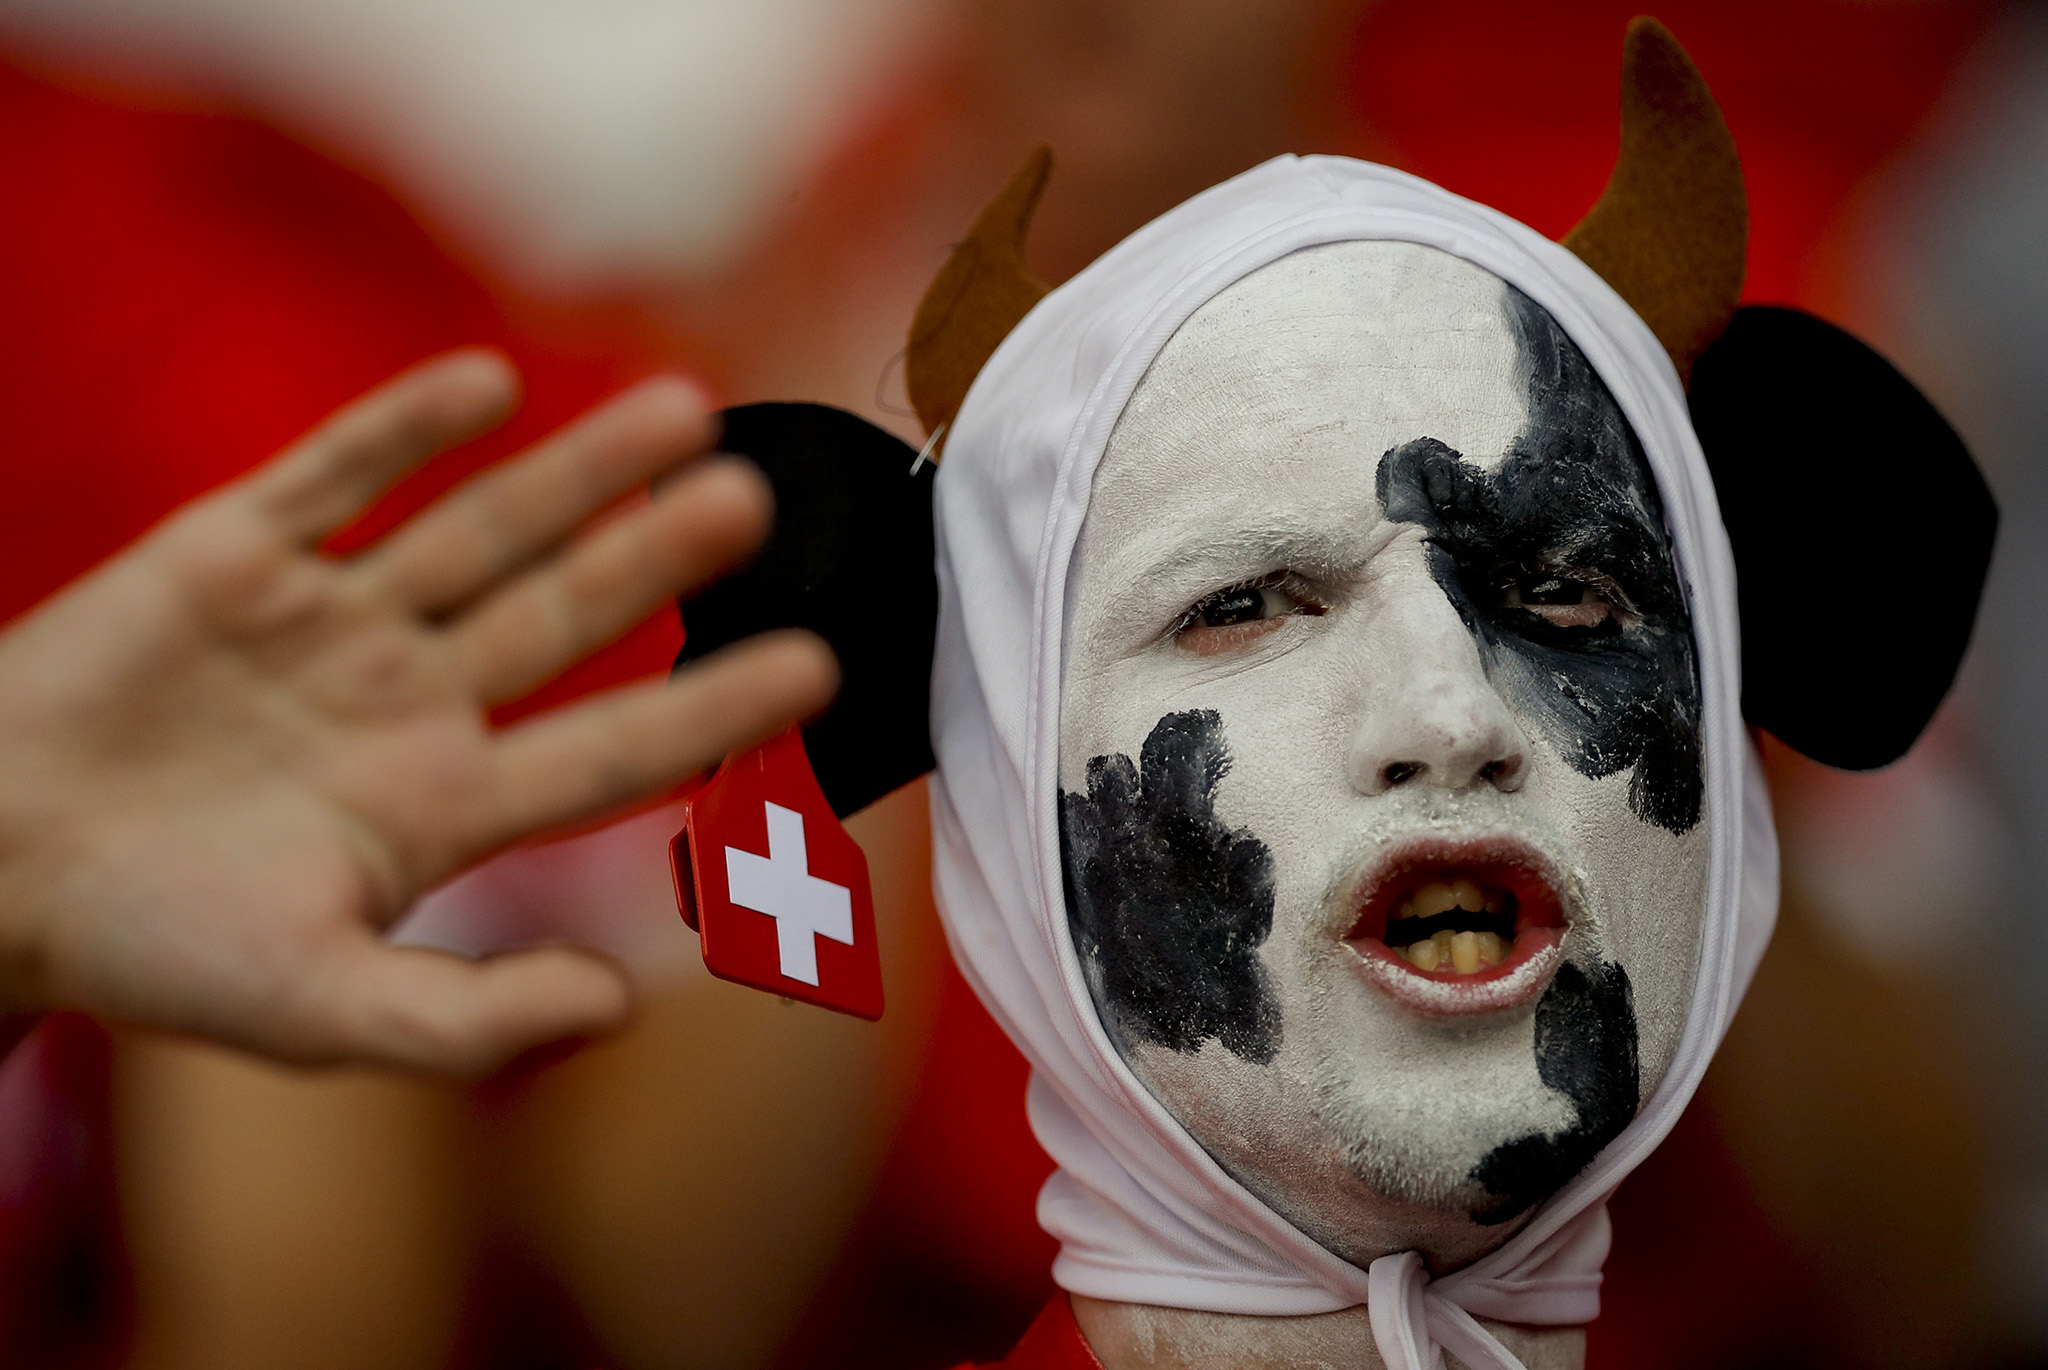 A Swiss fan waits for the start of the Euro 2016 Group A soccer match between Romania and Switzerland at the Parc des Princes stadium in Paris, France